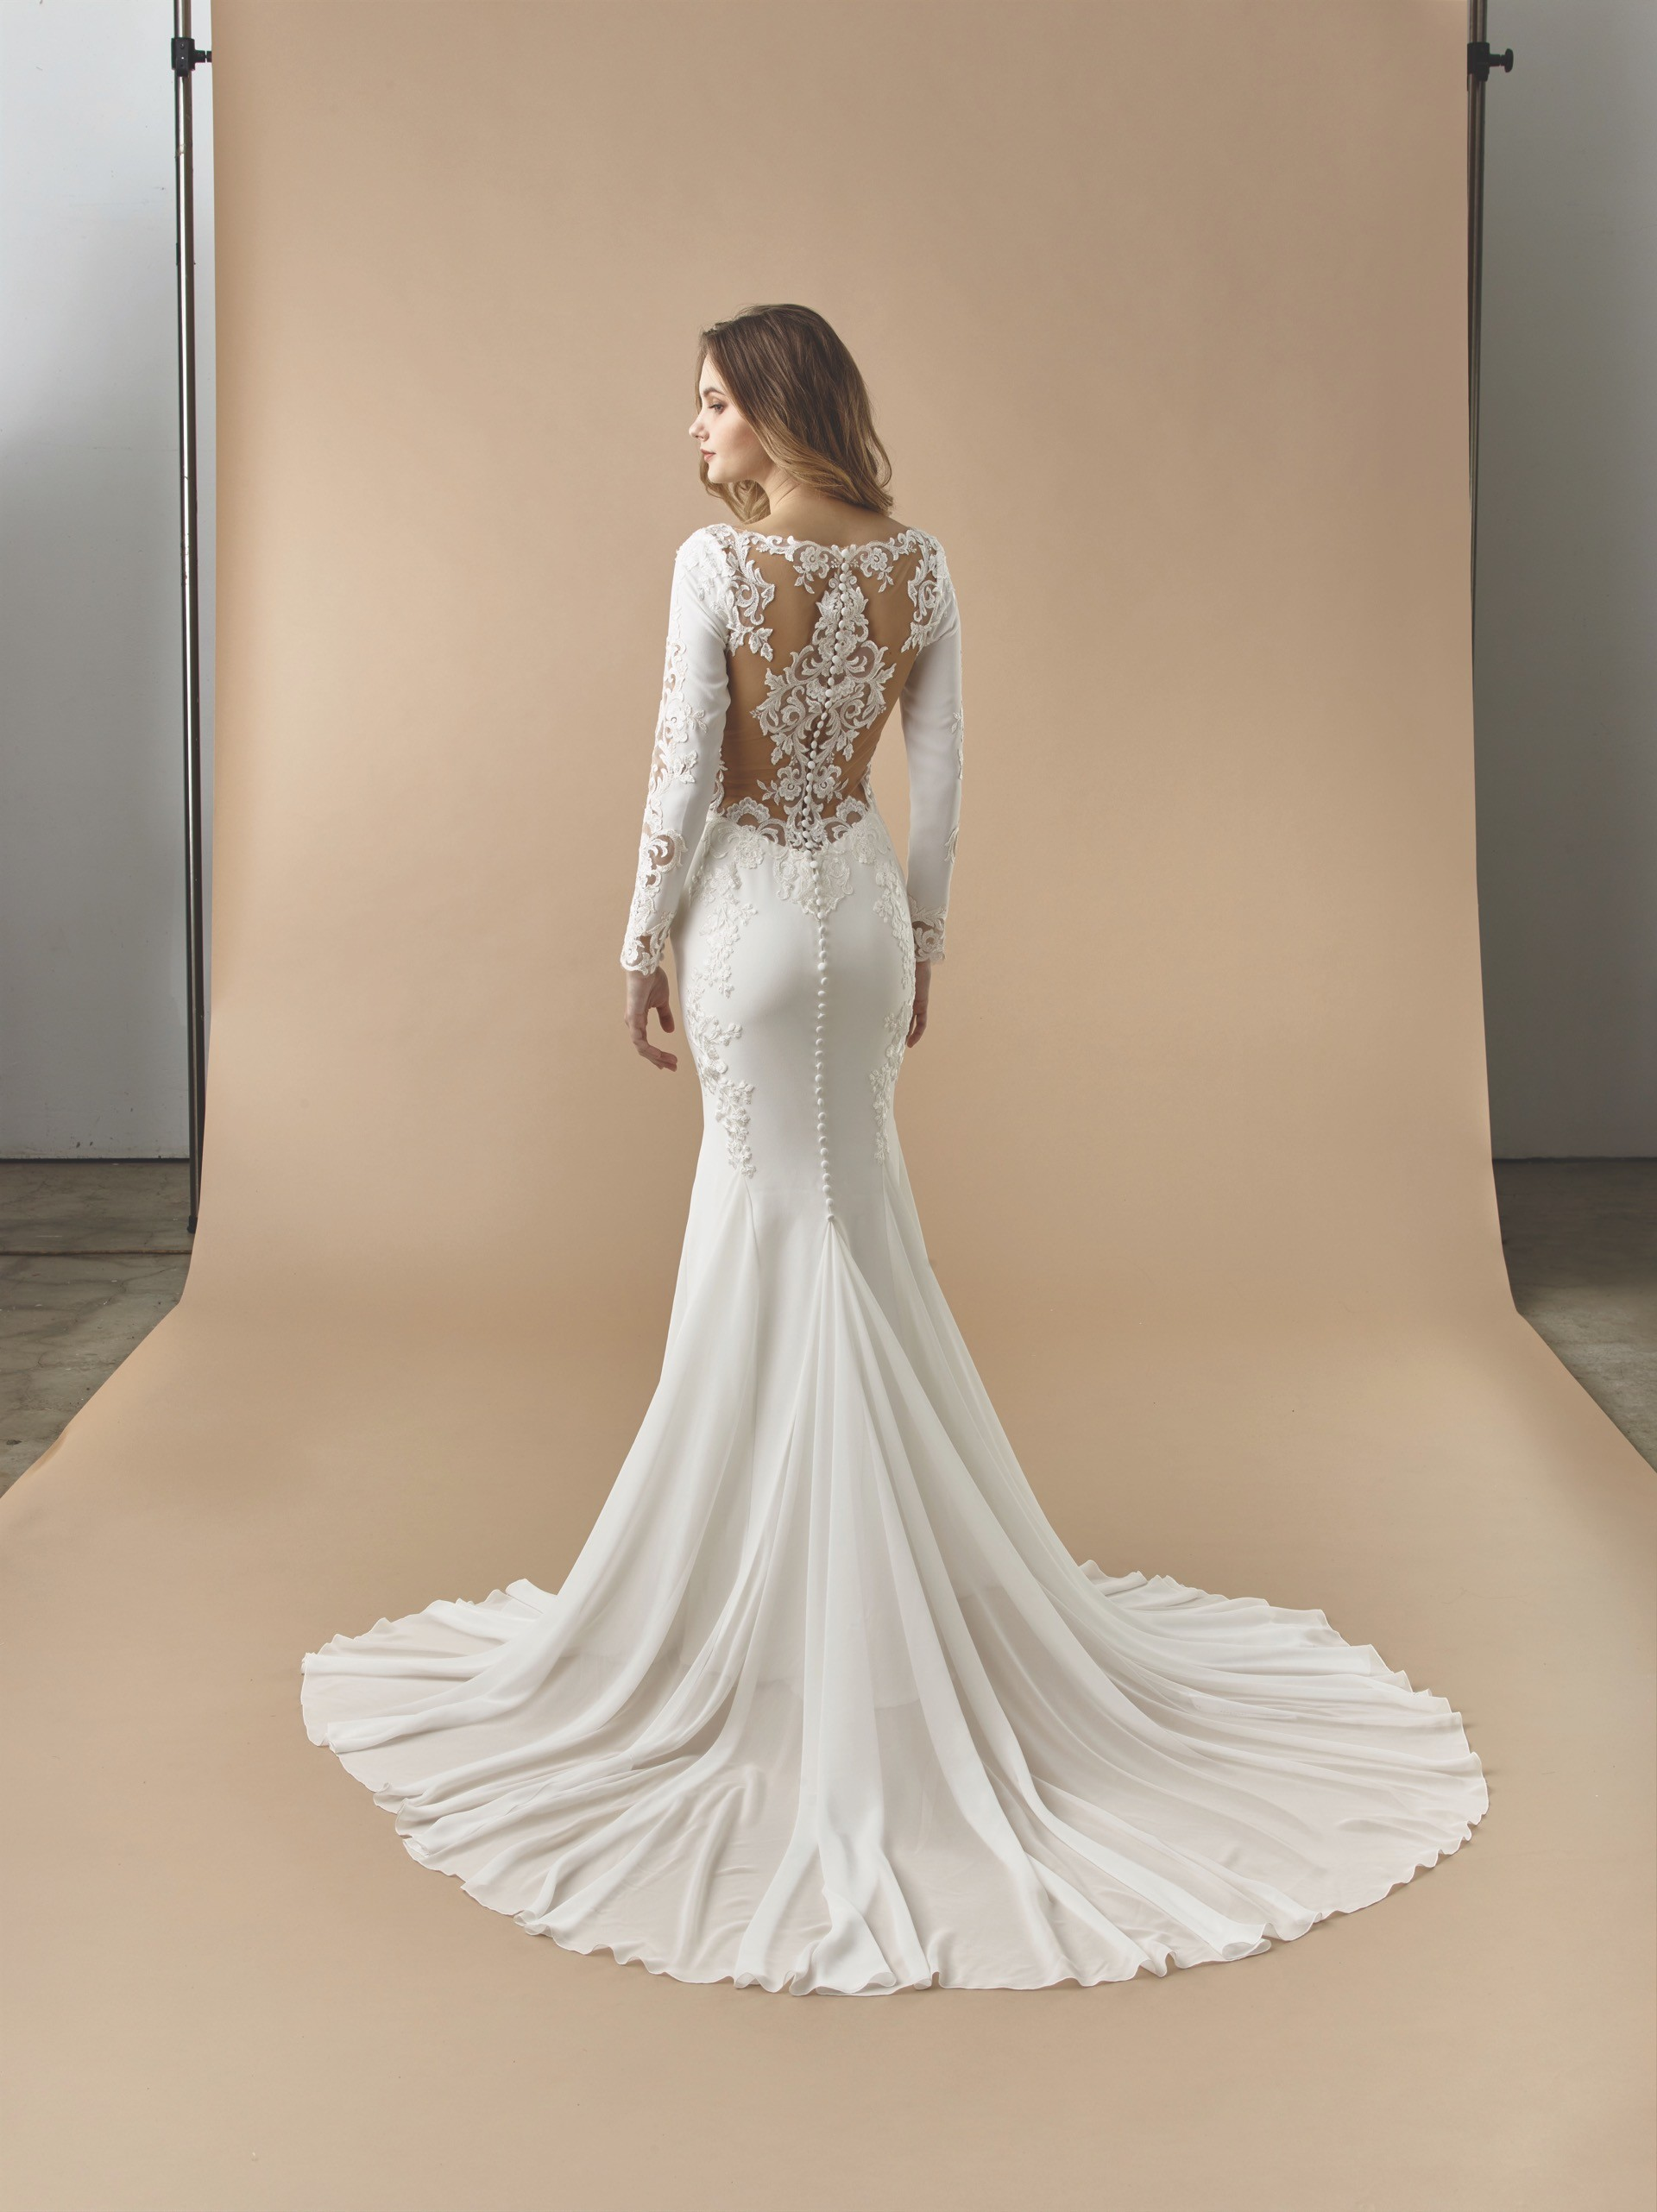 Brautkleid Modell BT 20-11 aus der Beautiful Bridal Kollektion 2020